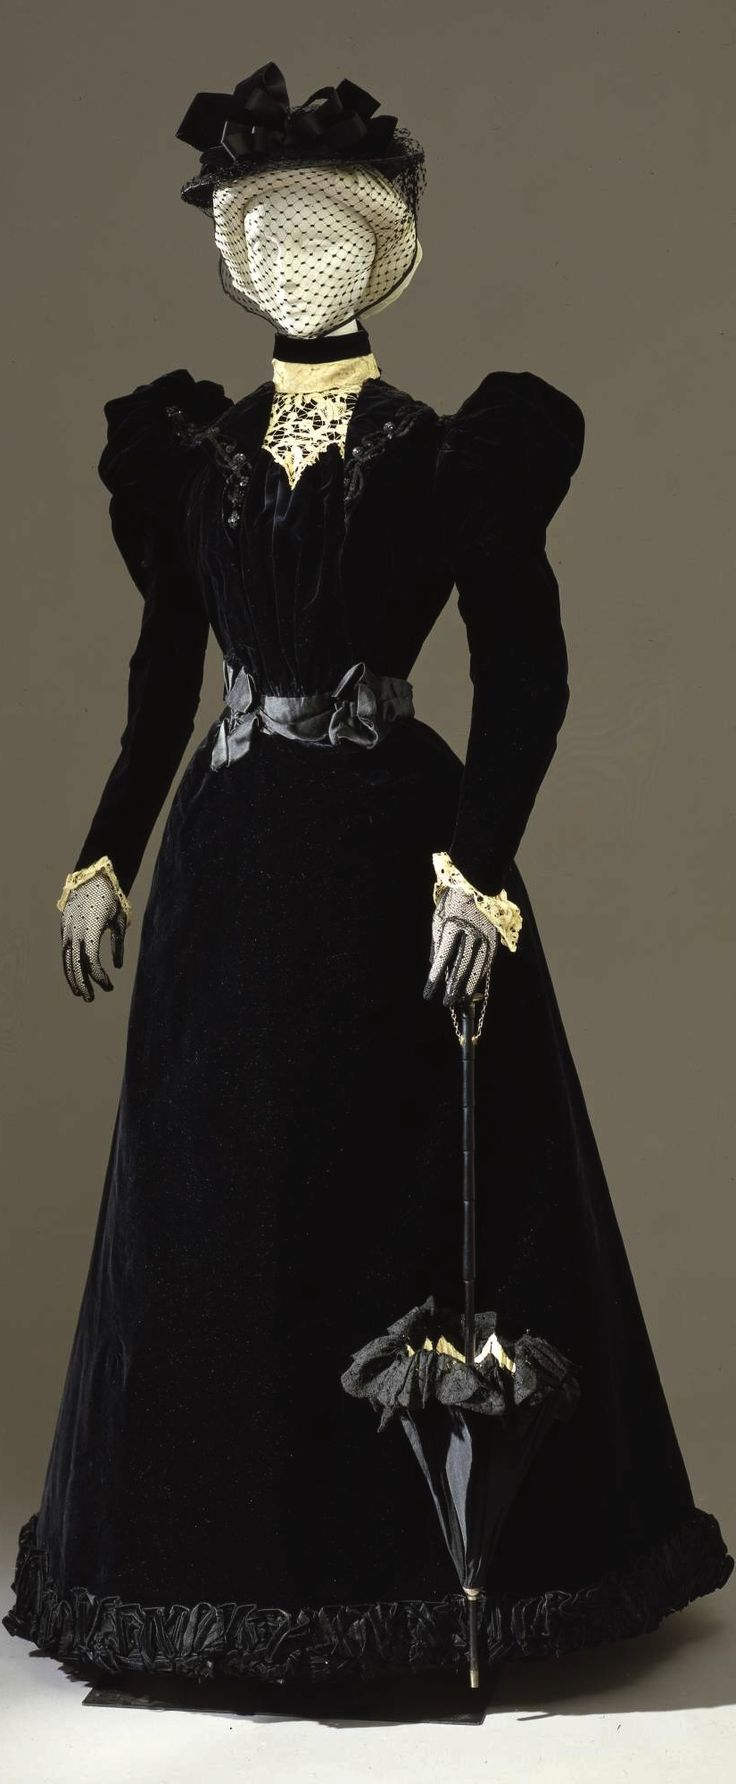 Black silk velvet walking dress in two parts (bodice and skirt), by Atelier Mrs. C. Donovan, New York, c. 1897-99, at the Pitti Palace Costume Gallery. Via Europeana Fashion.